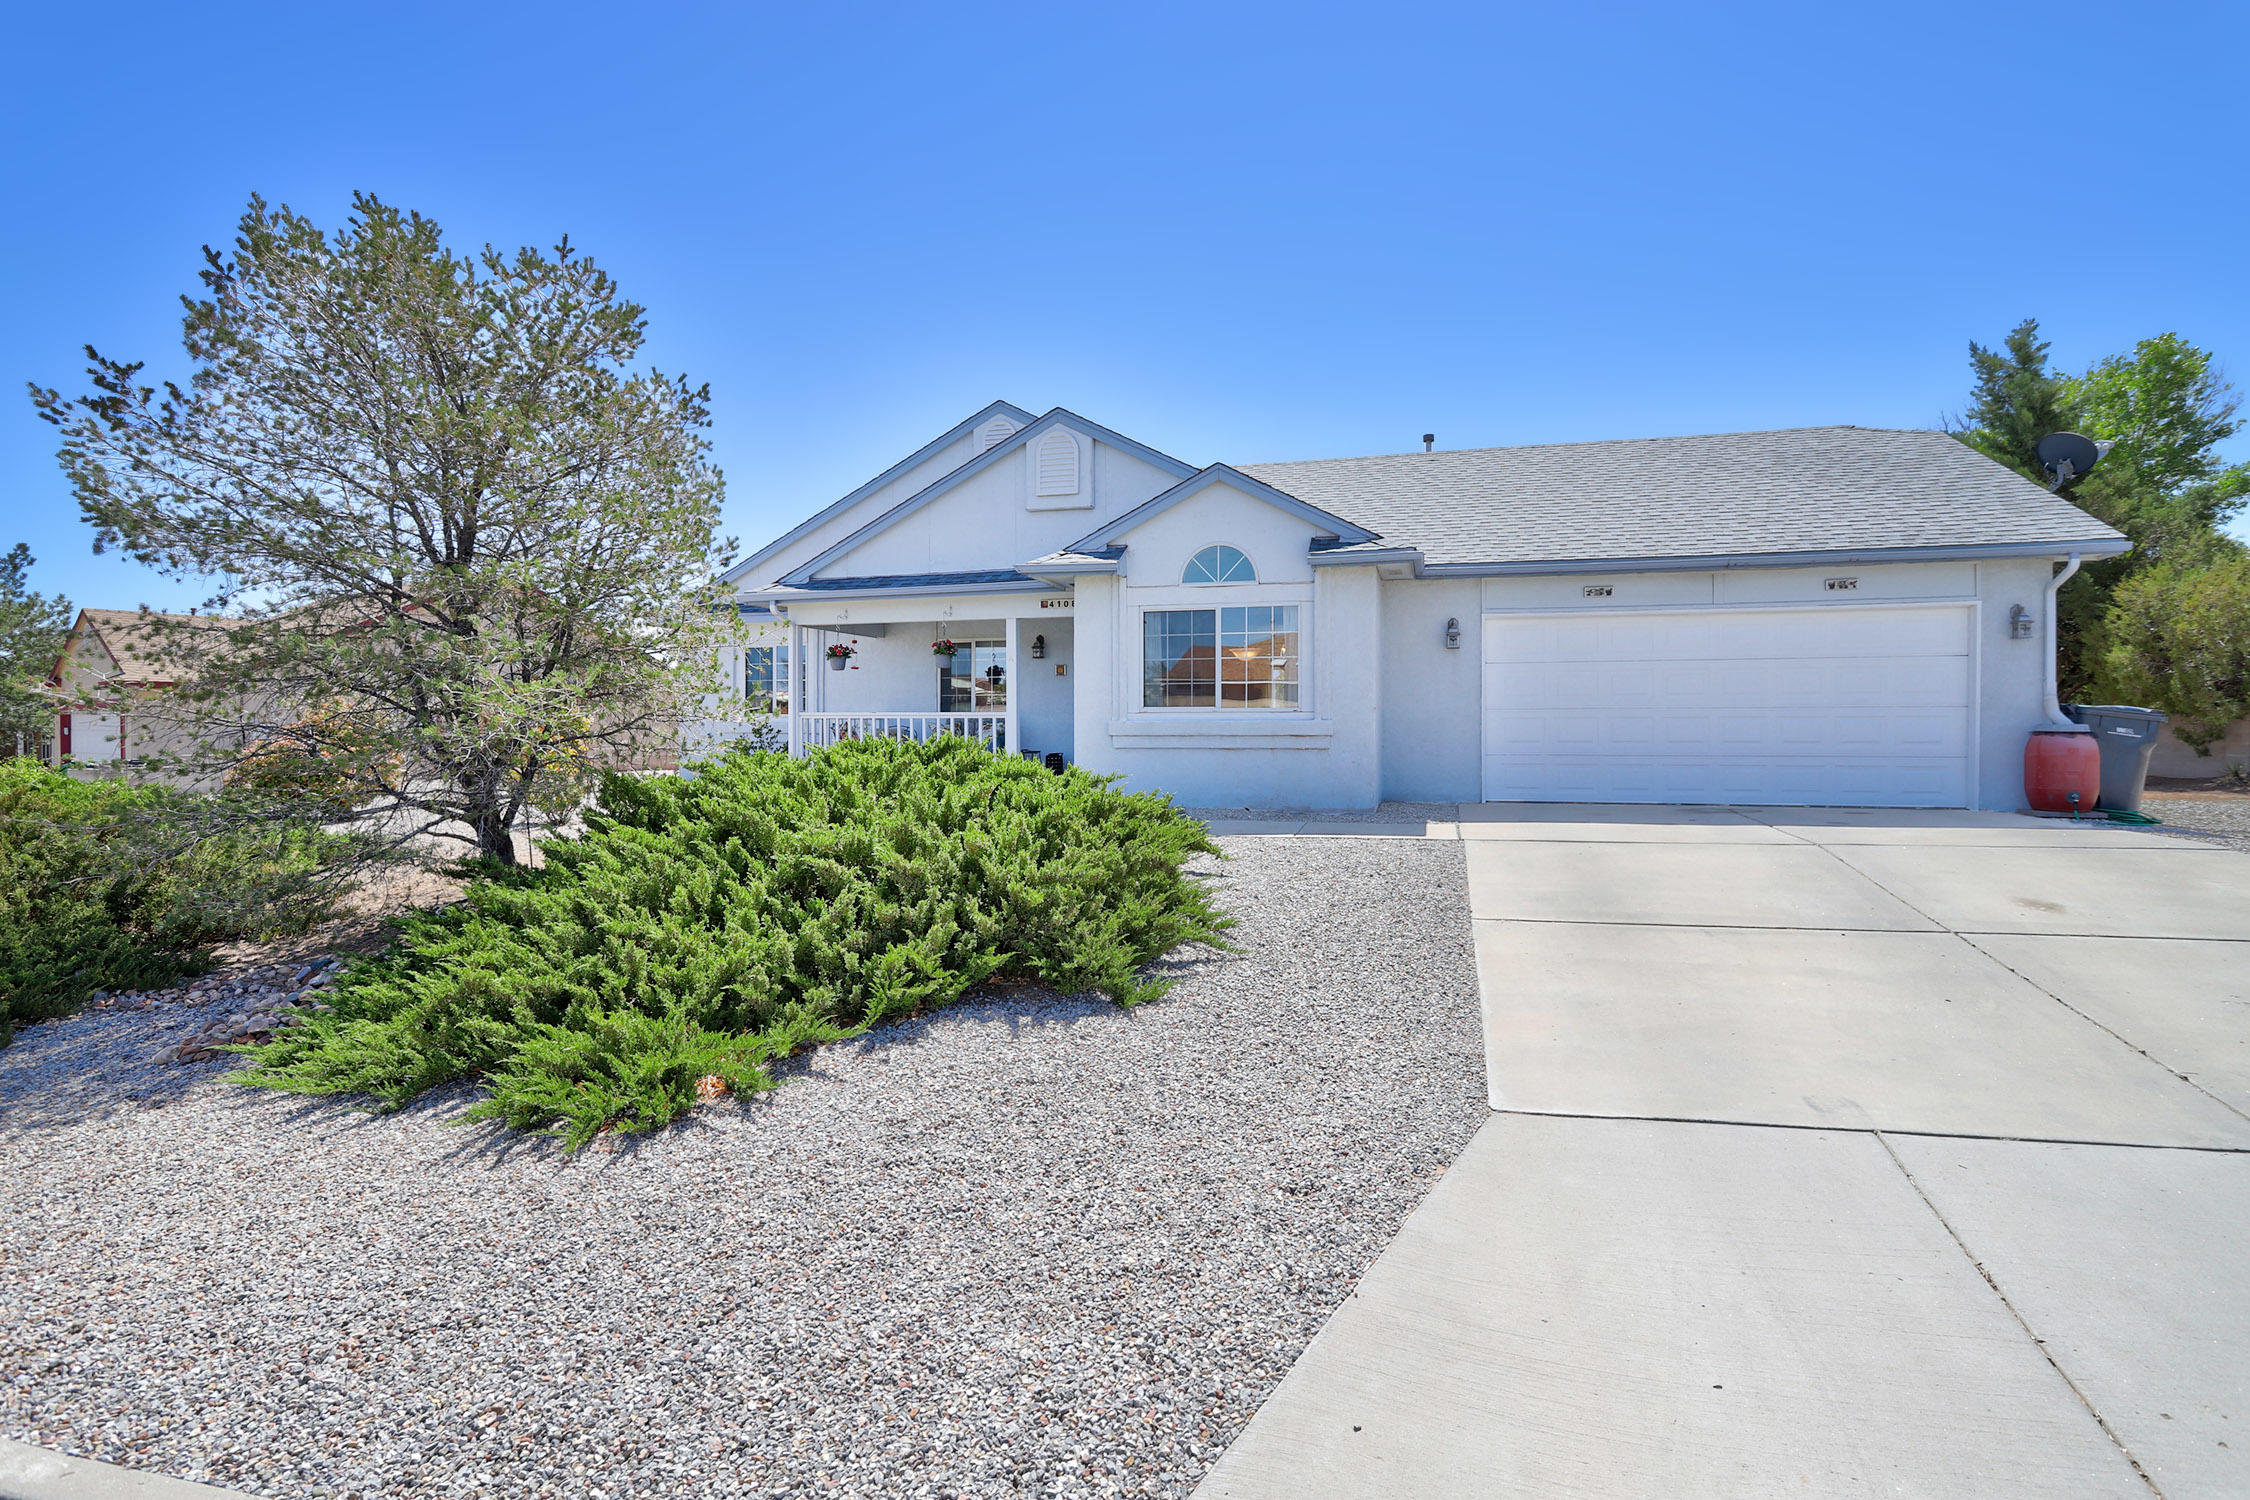 Light and bright 3 Bedroom, 2 Bath home in Enchanted Hills. Vaulted ceilings in the Family Room add to the spacious, open feel. The Kitchen has a pass thru counter to the Dining Area. There's even room for a table in the Eating Area. The Master Bedroom has two large closets and a private 3/4 Bath. The Full Hall Bathroom serves the additional 2 Bedrooms. The .289 acre outdoor living space is exceptional, featuring a large covered patio, extended patio space with a pergola, firepit area & sideyard space for extra parking or RV. Large attached 2 car garage where laundry is located. Very well maintained. Conveying in AS IS condition. Seller providing 1 year home warranty with Key Estates for buyer peace of mind. So convenient to schools, shopping, restaurants and access to I25. Welcome Home!